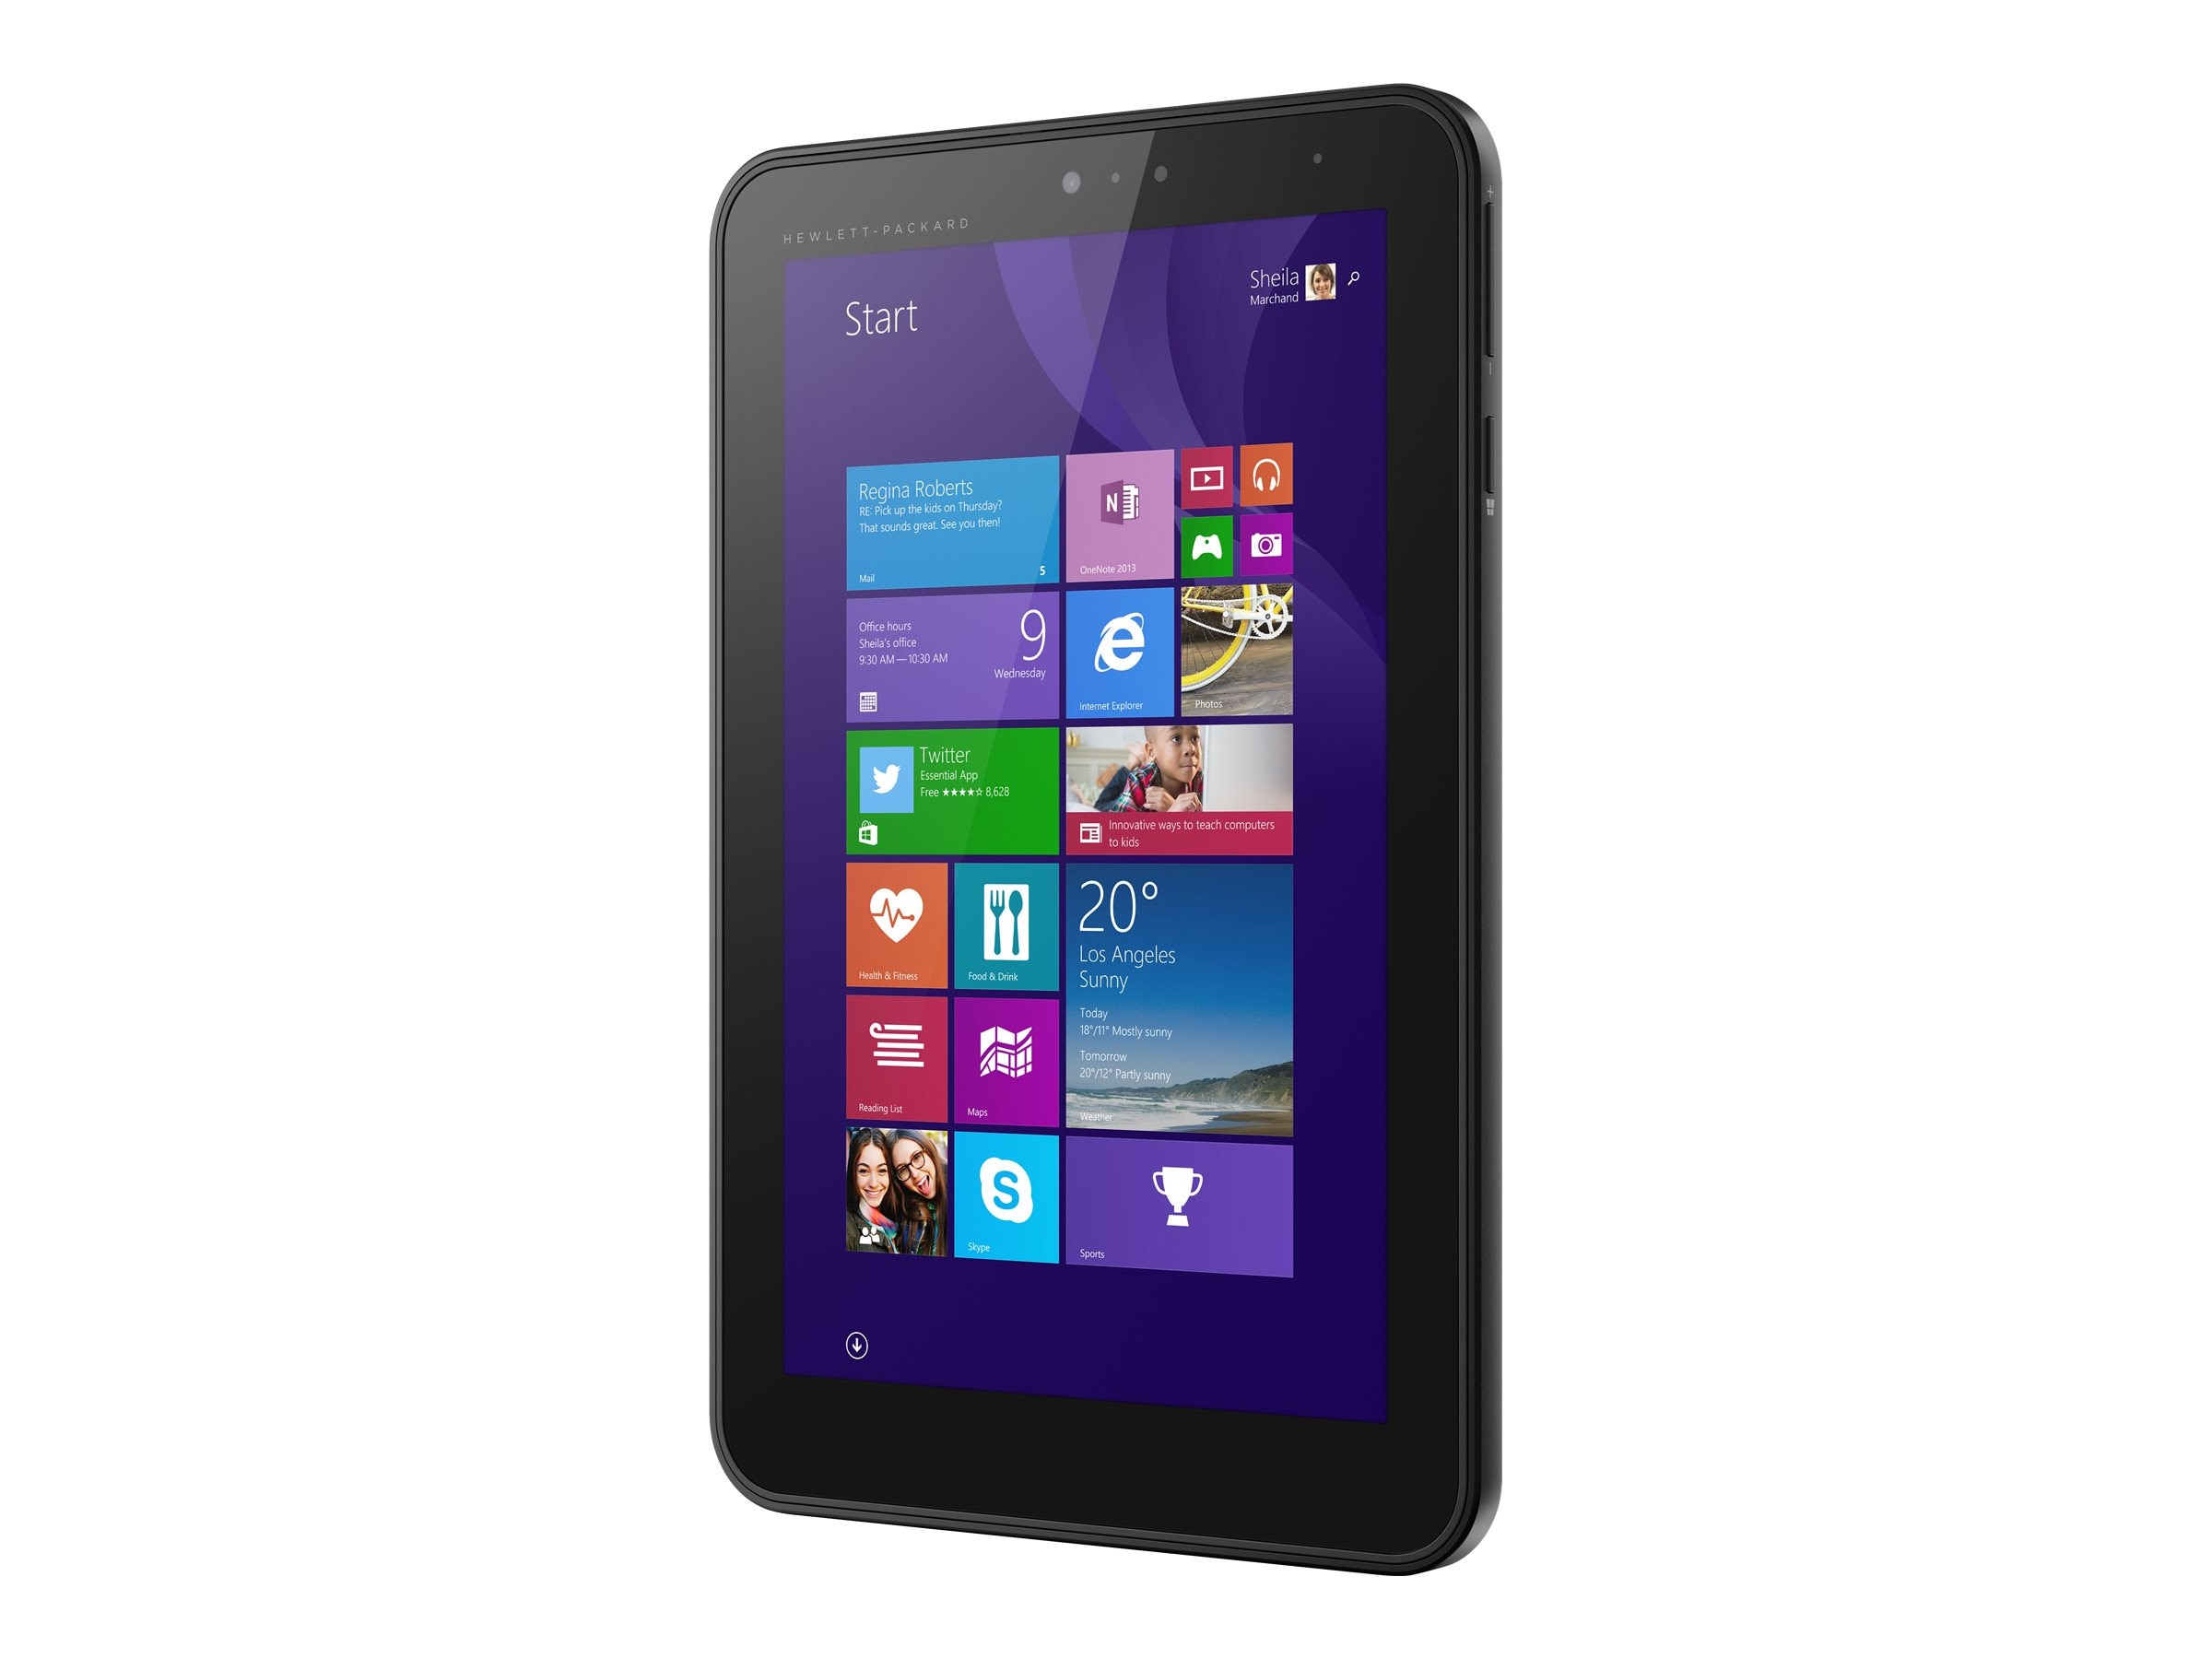 HP Smart Buy Pro Tablet 408 G1 1.33GHz processor Windows 8.1 Pro, L4A36UT#ABA, 18357737, Tablets